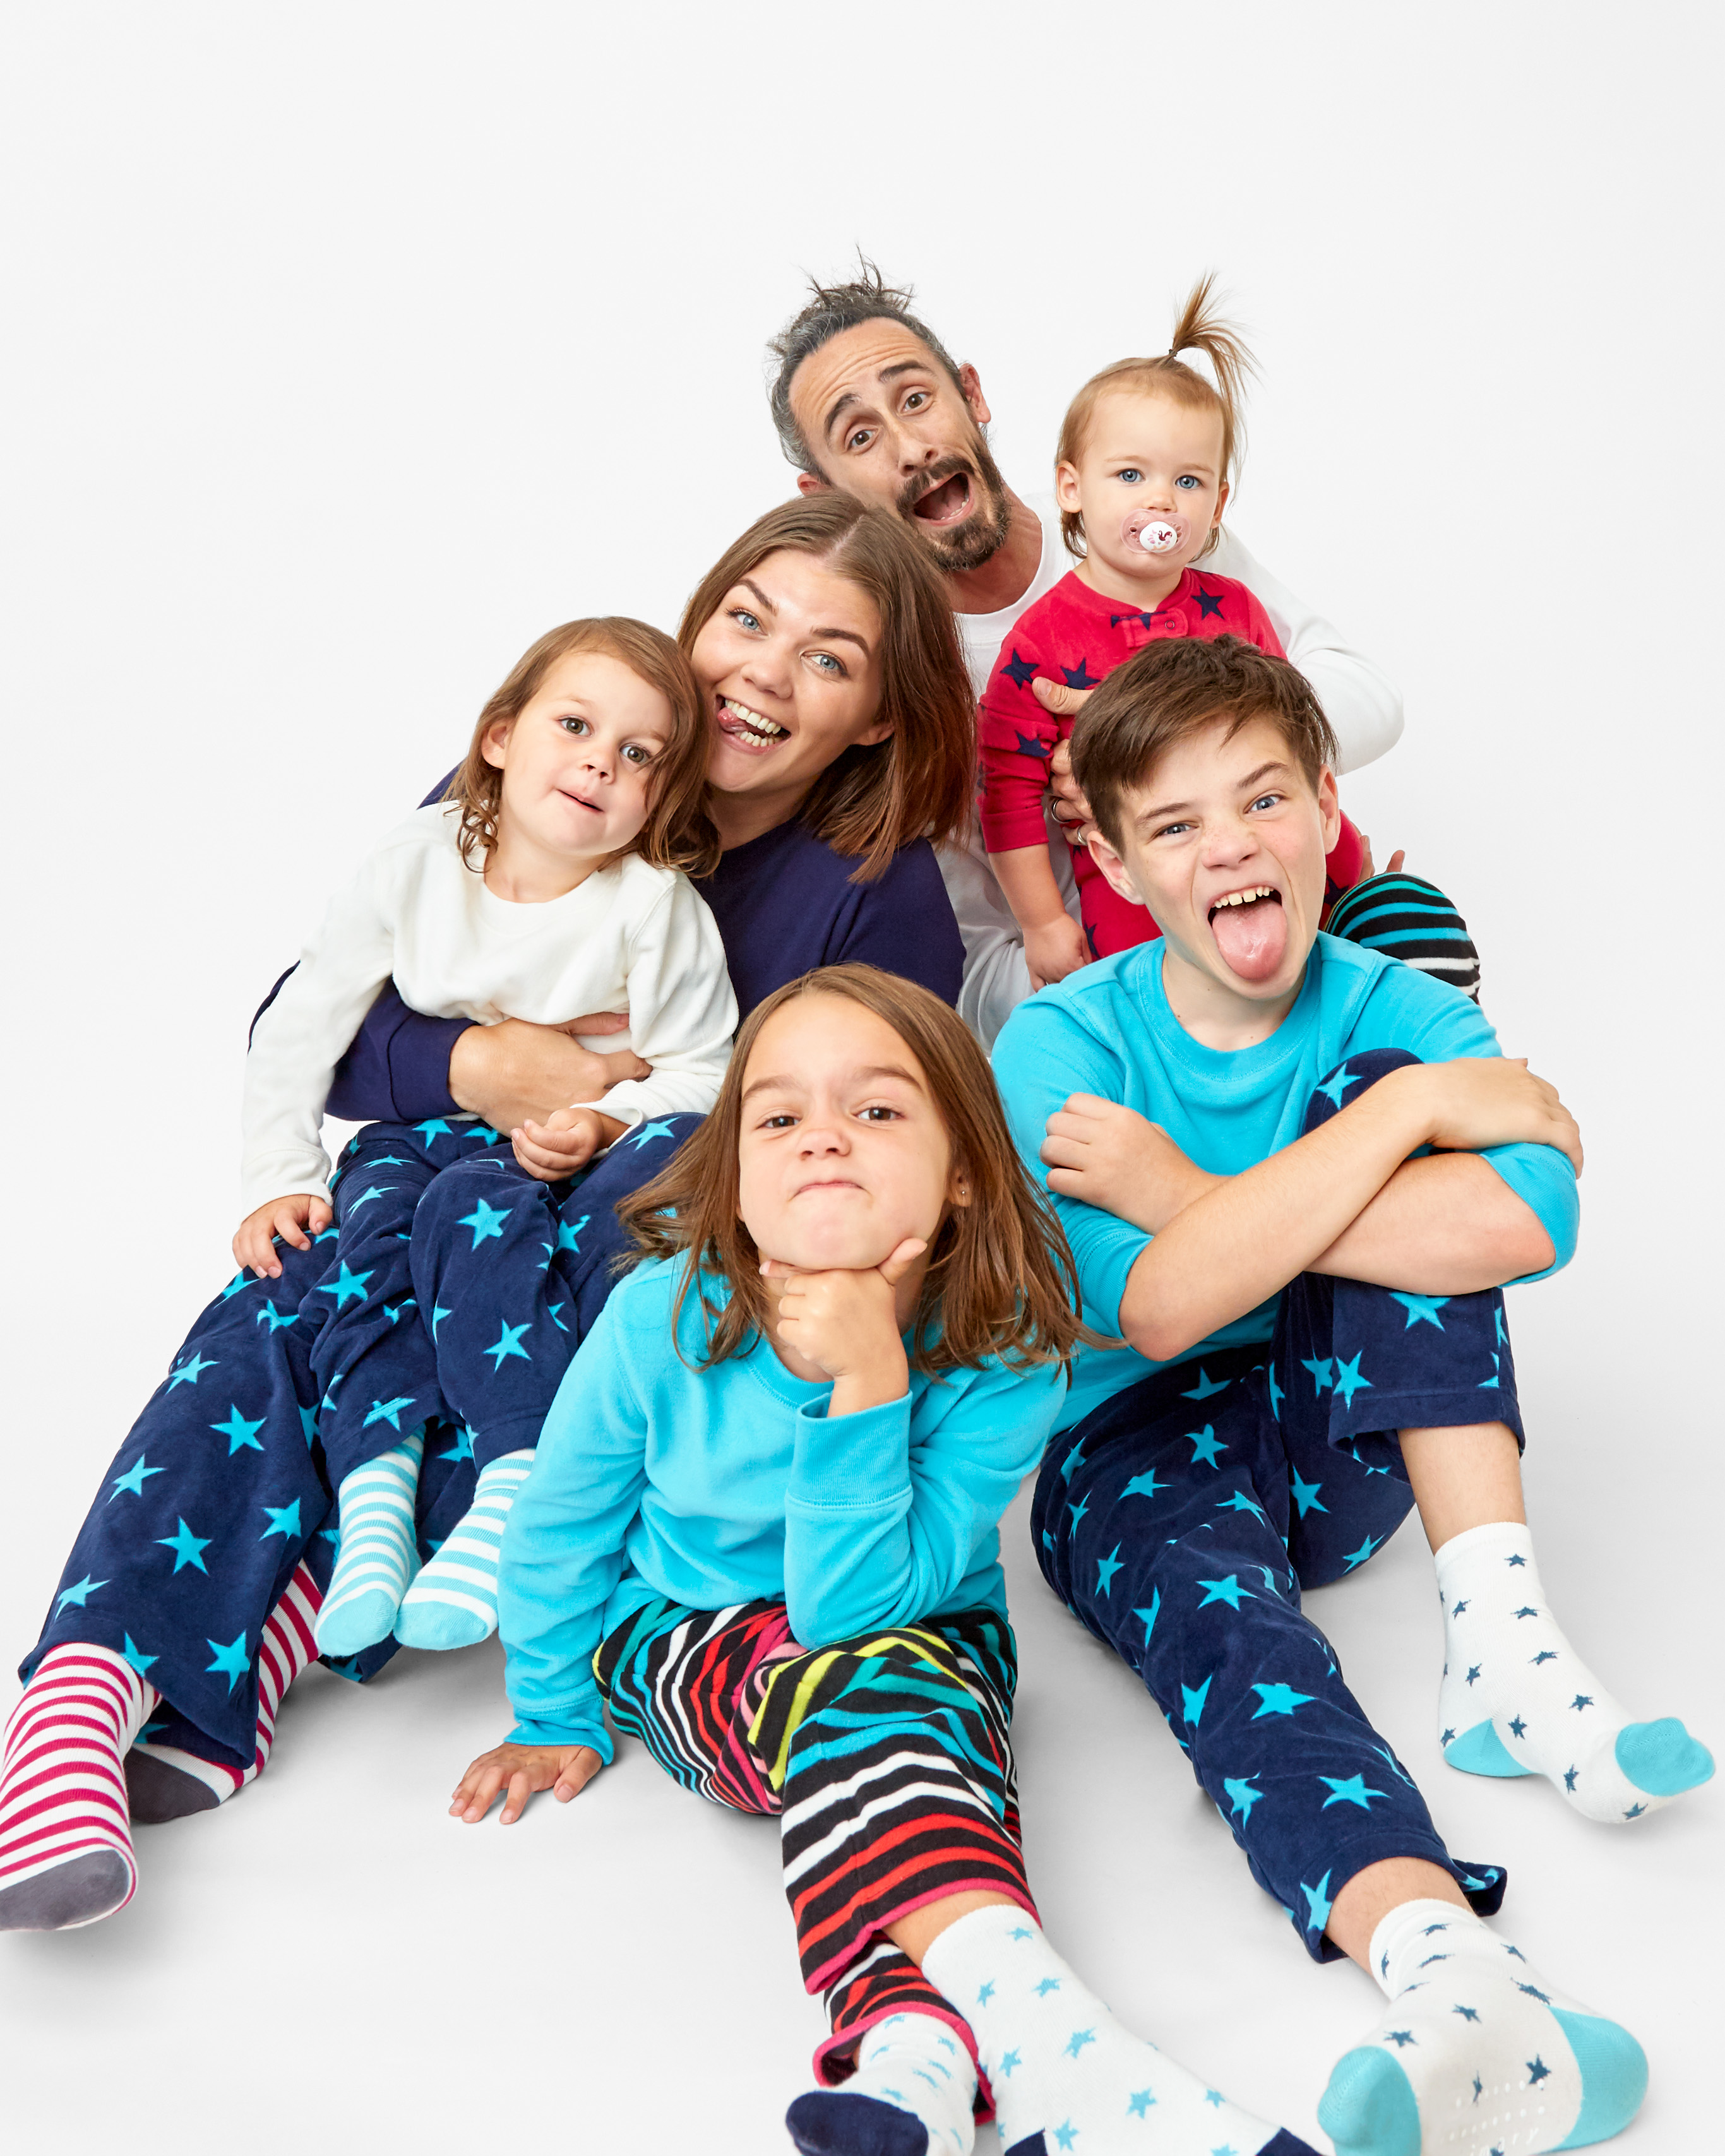 family sitting together wearing matching multicolored fleece pajamas